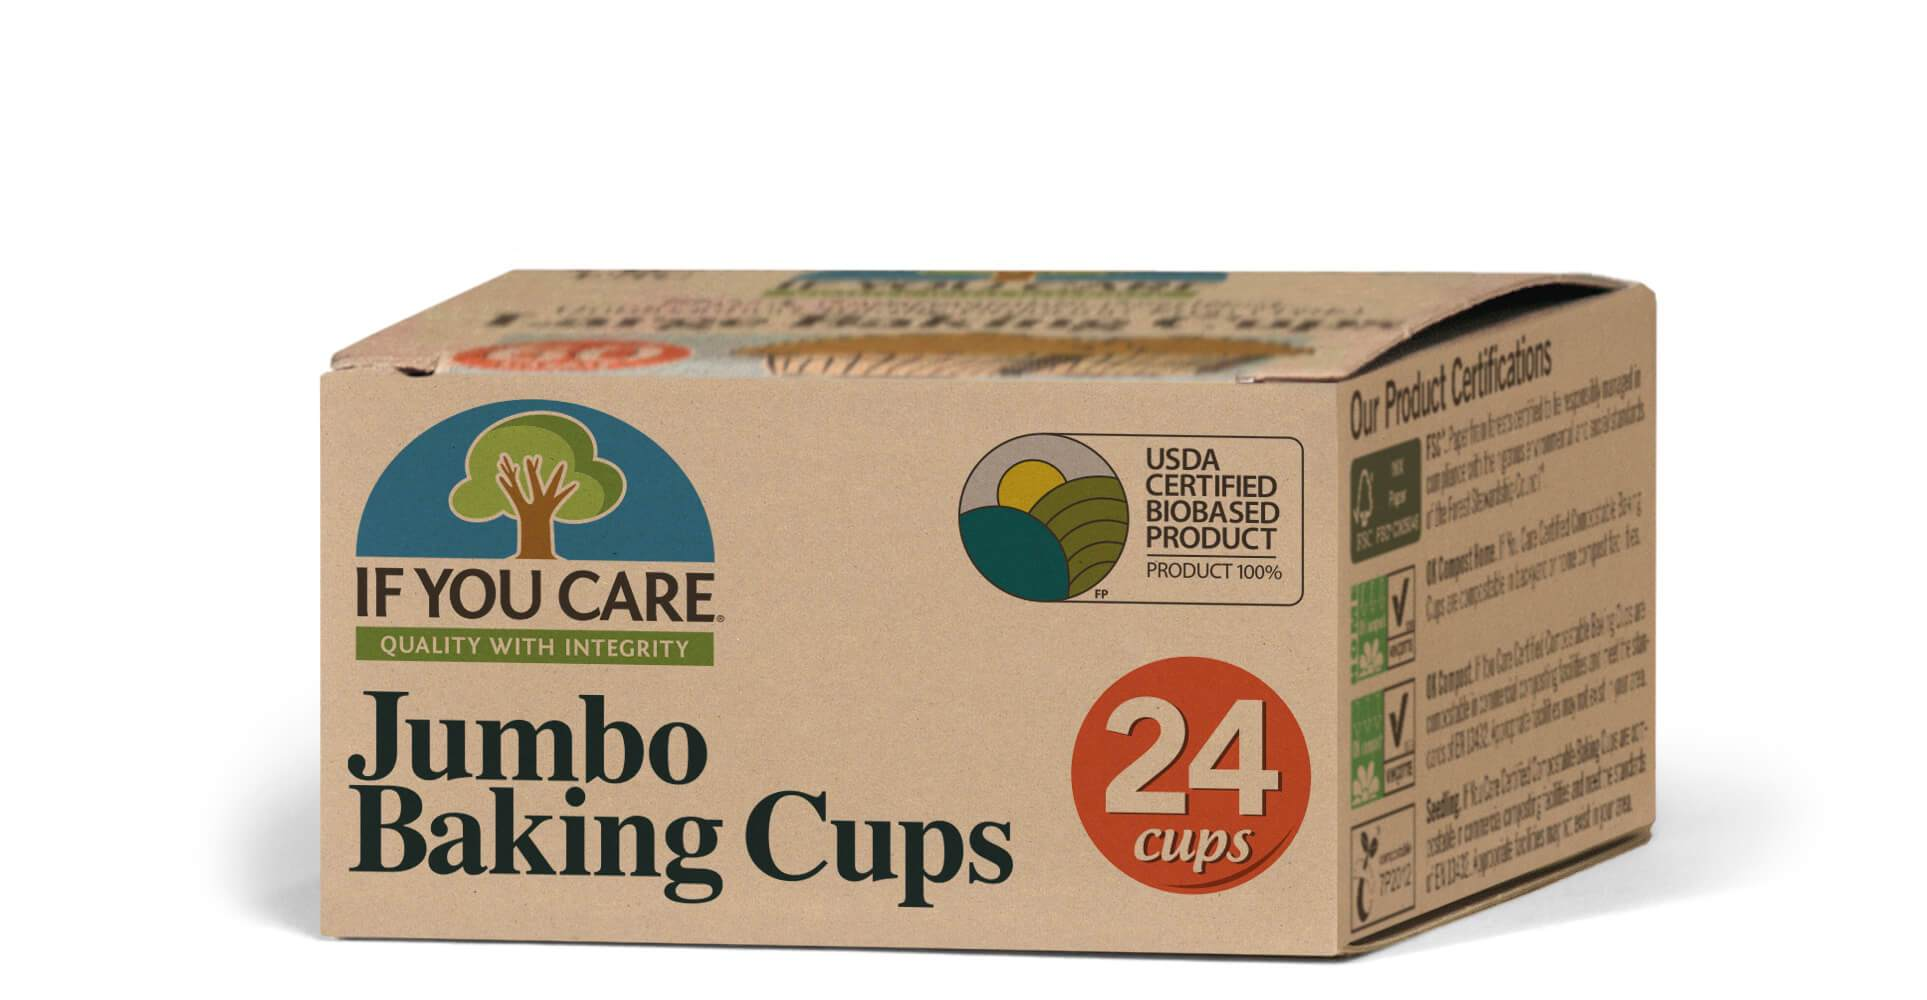 Healthy Lifestyles - If You Care - Enviro Friendly - Jumbo Baking Cups, 24 Cups